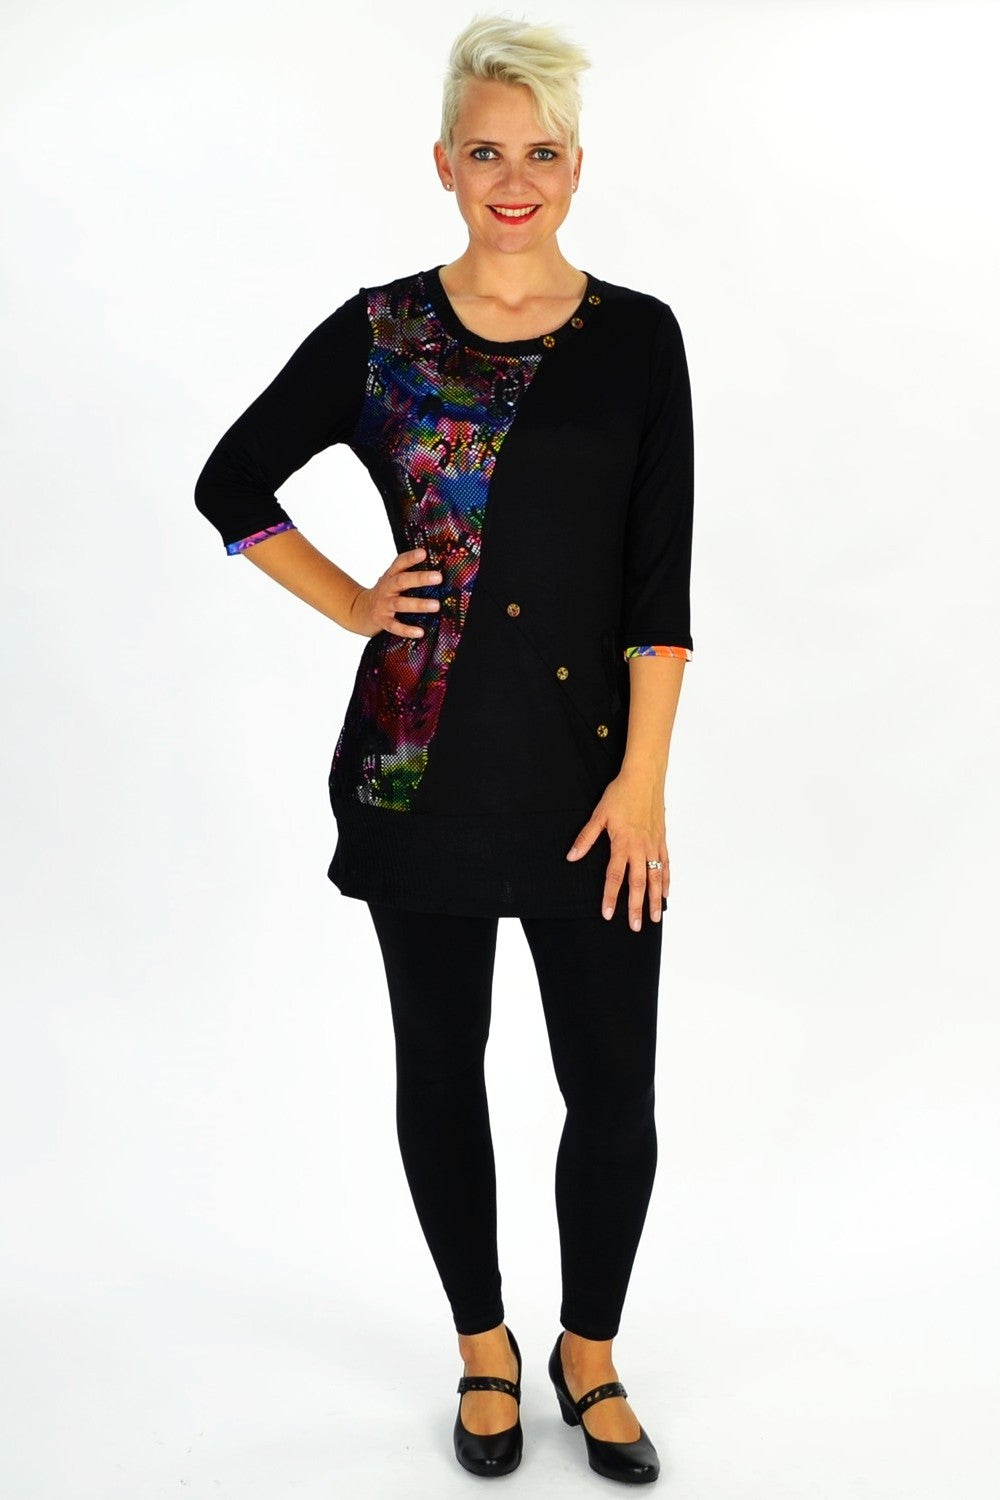 Rachel Tunic - at I Love Tunics @ www.ilovetunics.com = Number One! Tunics Destination